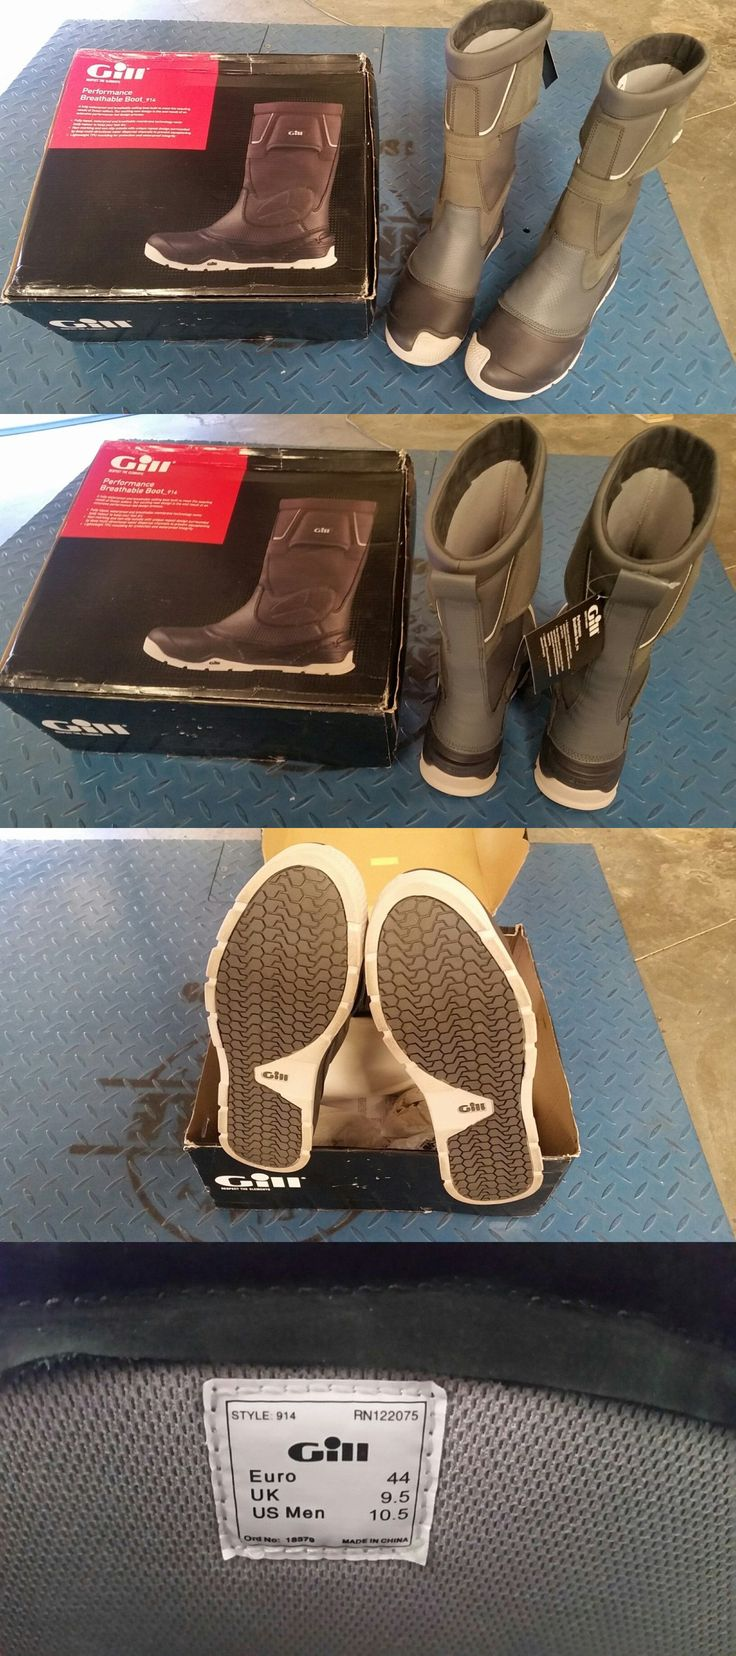 Men 159144: Gill Performance Breathable Sailing Boots - Graphite Mens 10.5 -> BUY IT NOW ONLY: $230 on eBay!